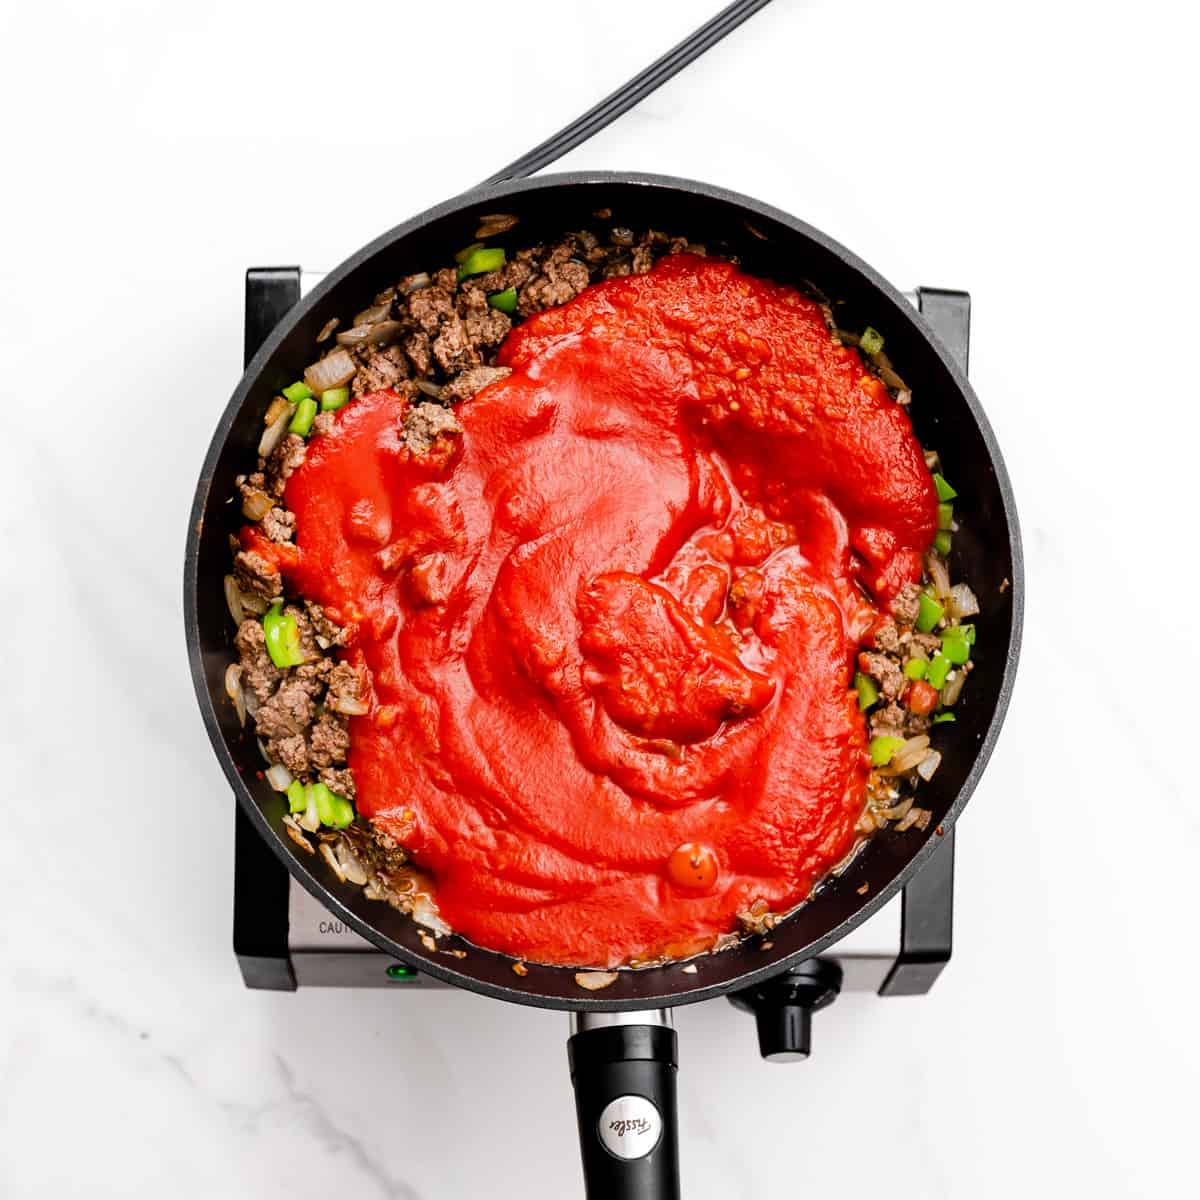 Add marinara sauce and tomato sauce into the skillet. Simmer the sauce on low for about 7-10 minutes.